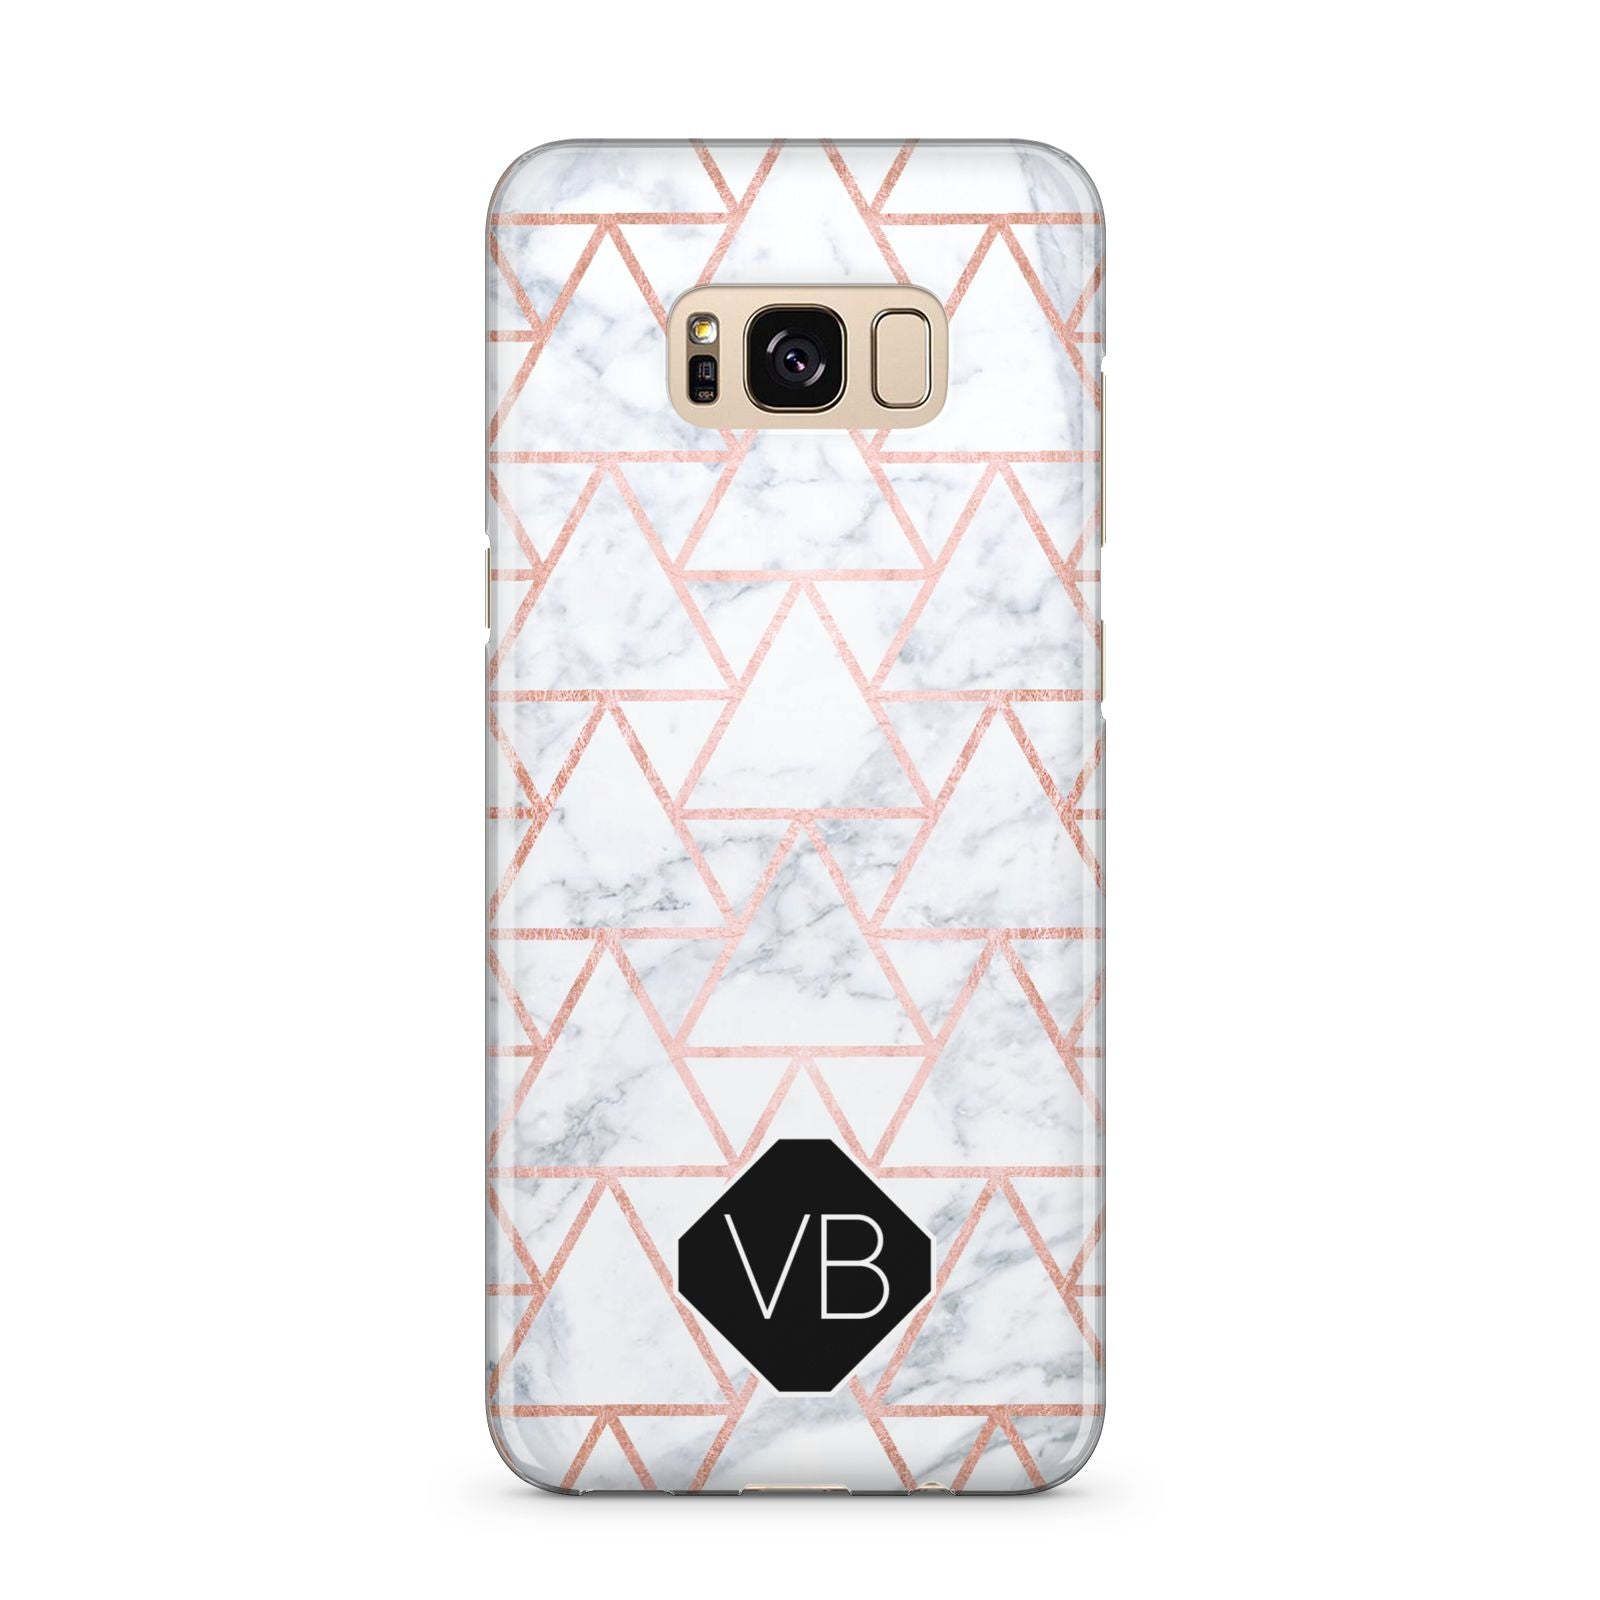 Personalised Rose Gold Grey Marble Hexagon Samsung Galaxy S8 Plus Case